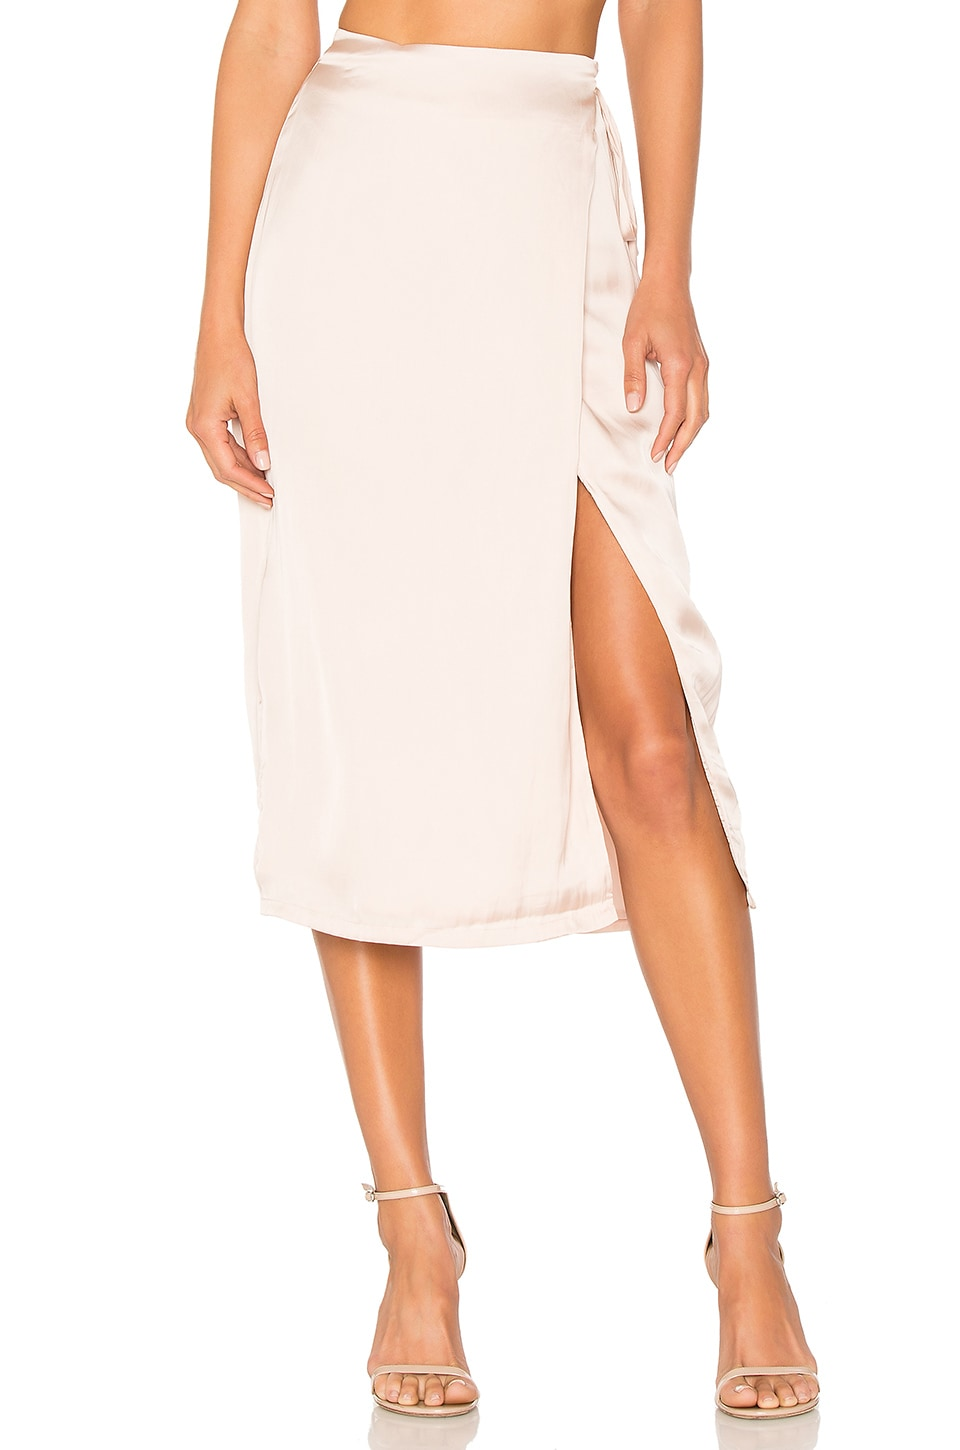 Lovers + Friends Midsummer Wrap Skirt in Champagne